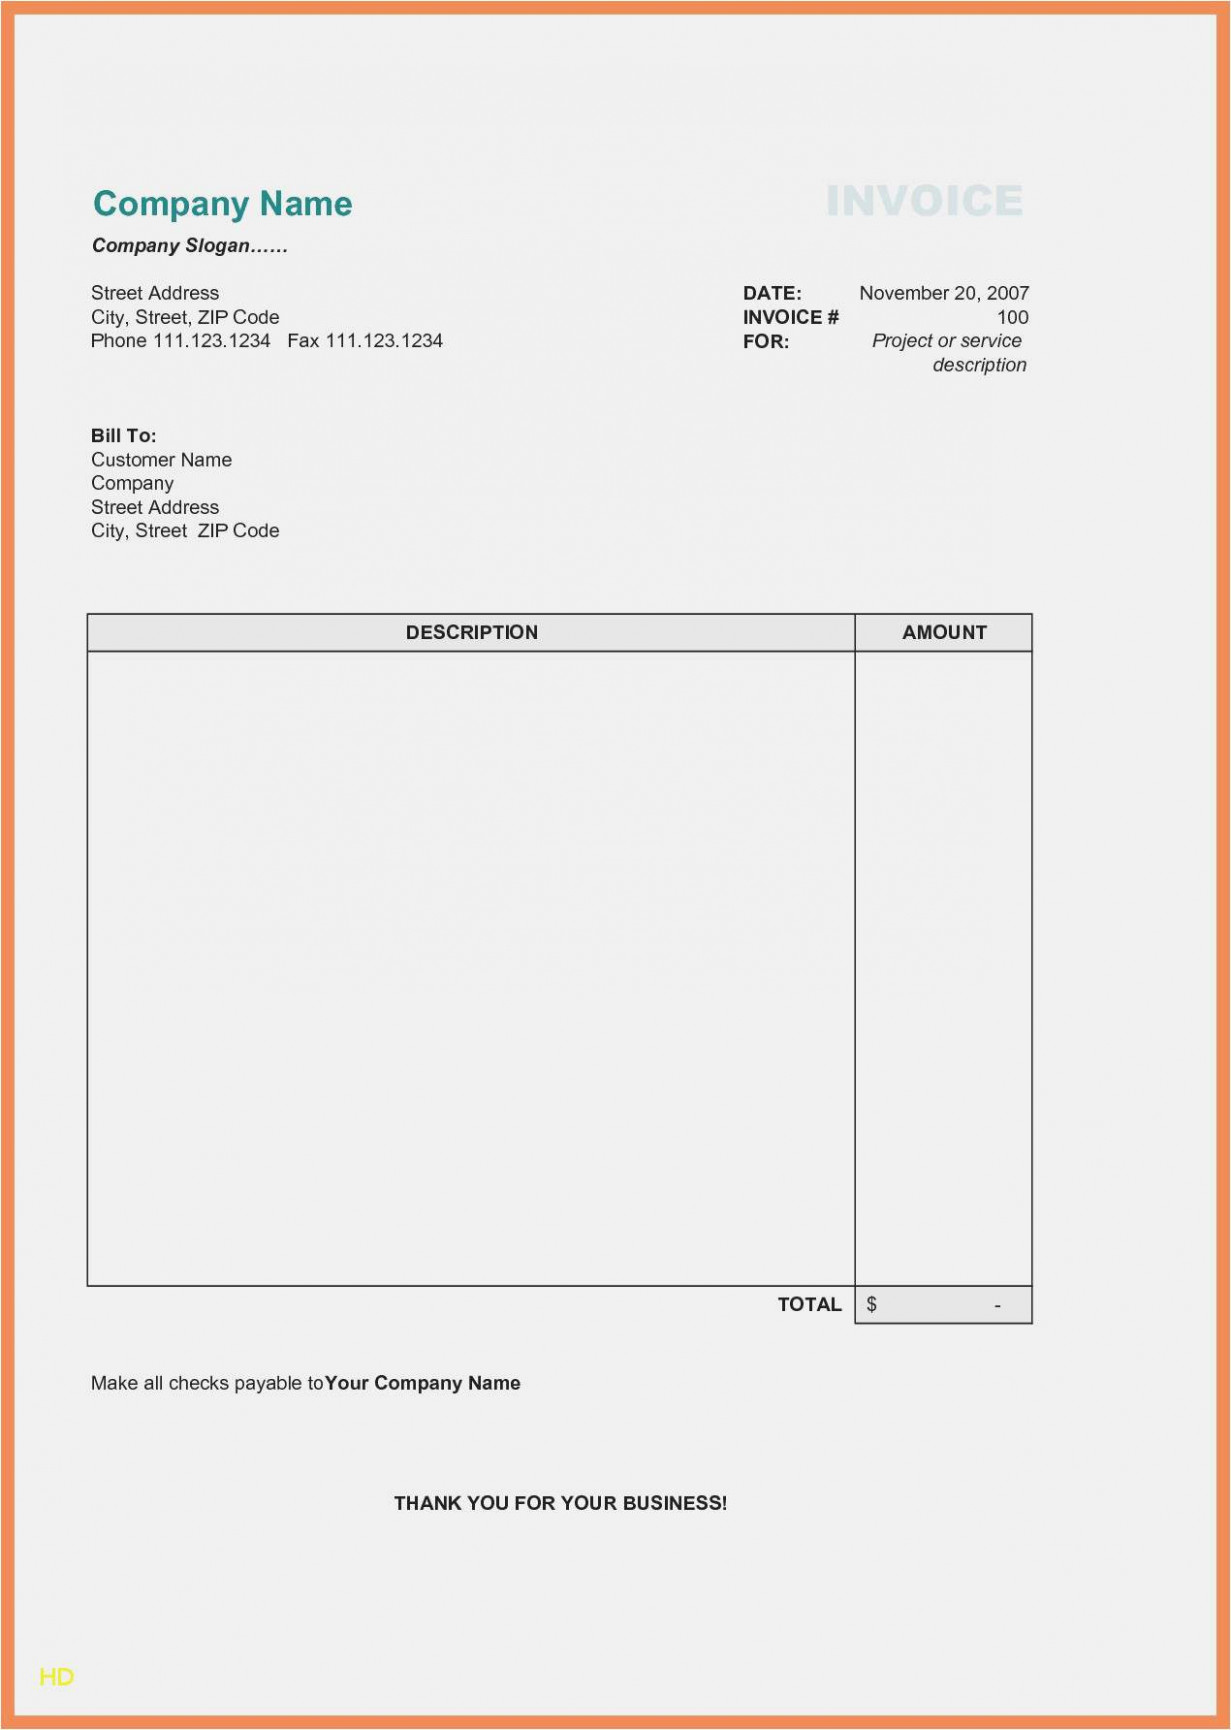 Fillable Invoice Template Pdf Luxury 14 Questions to ask at